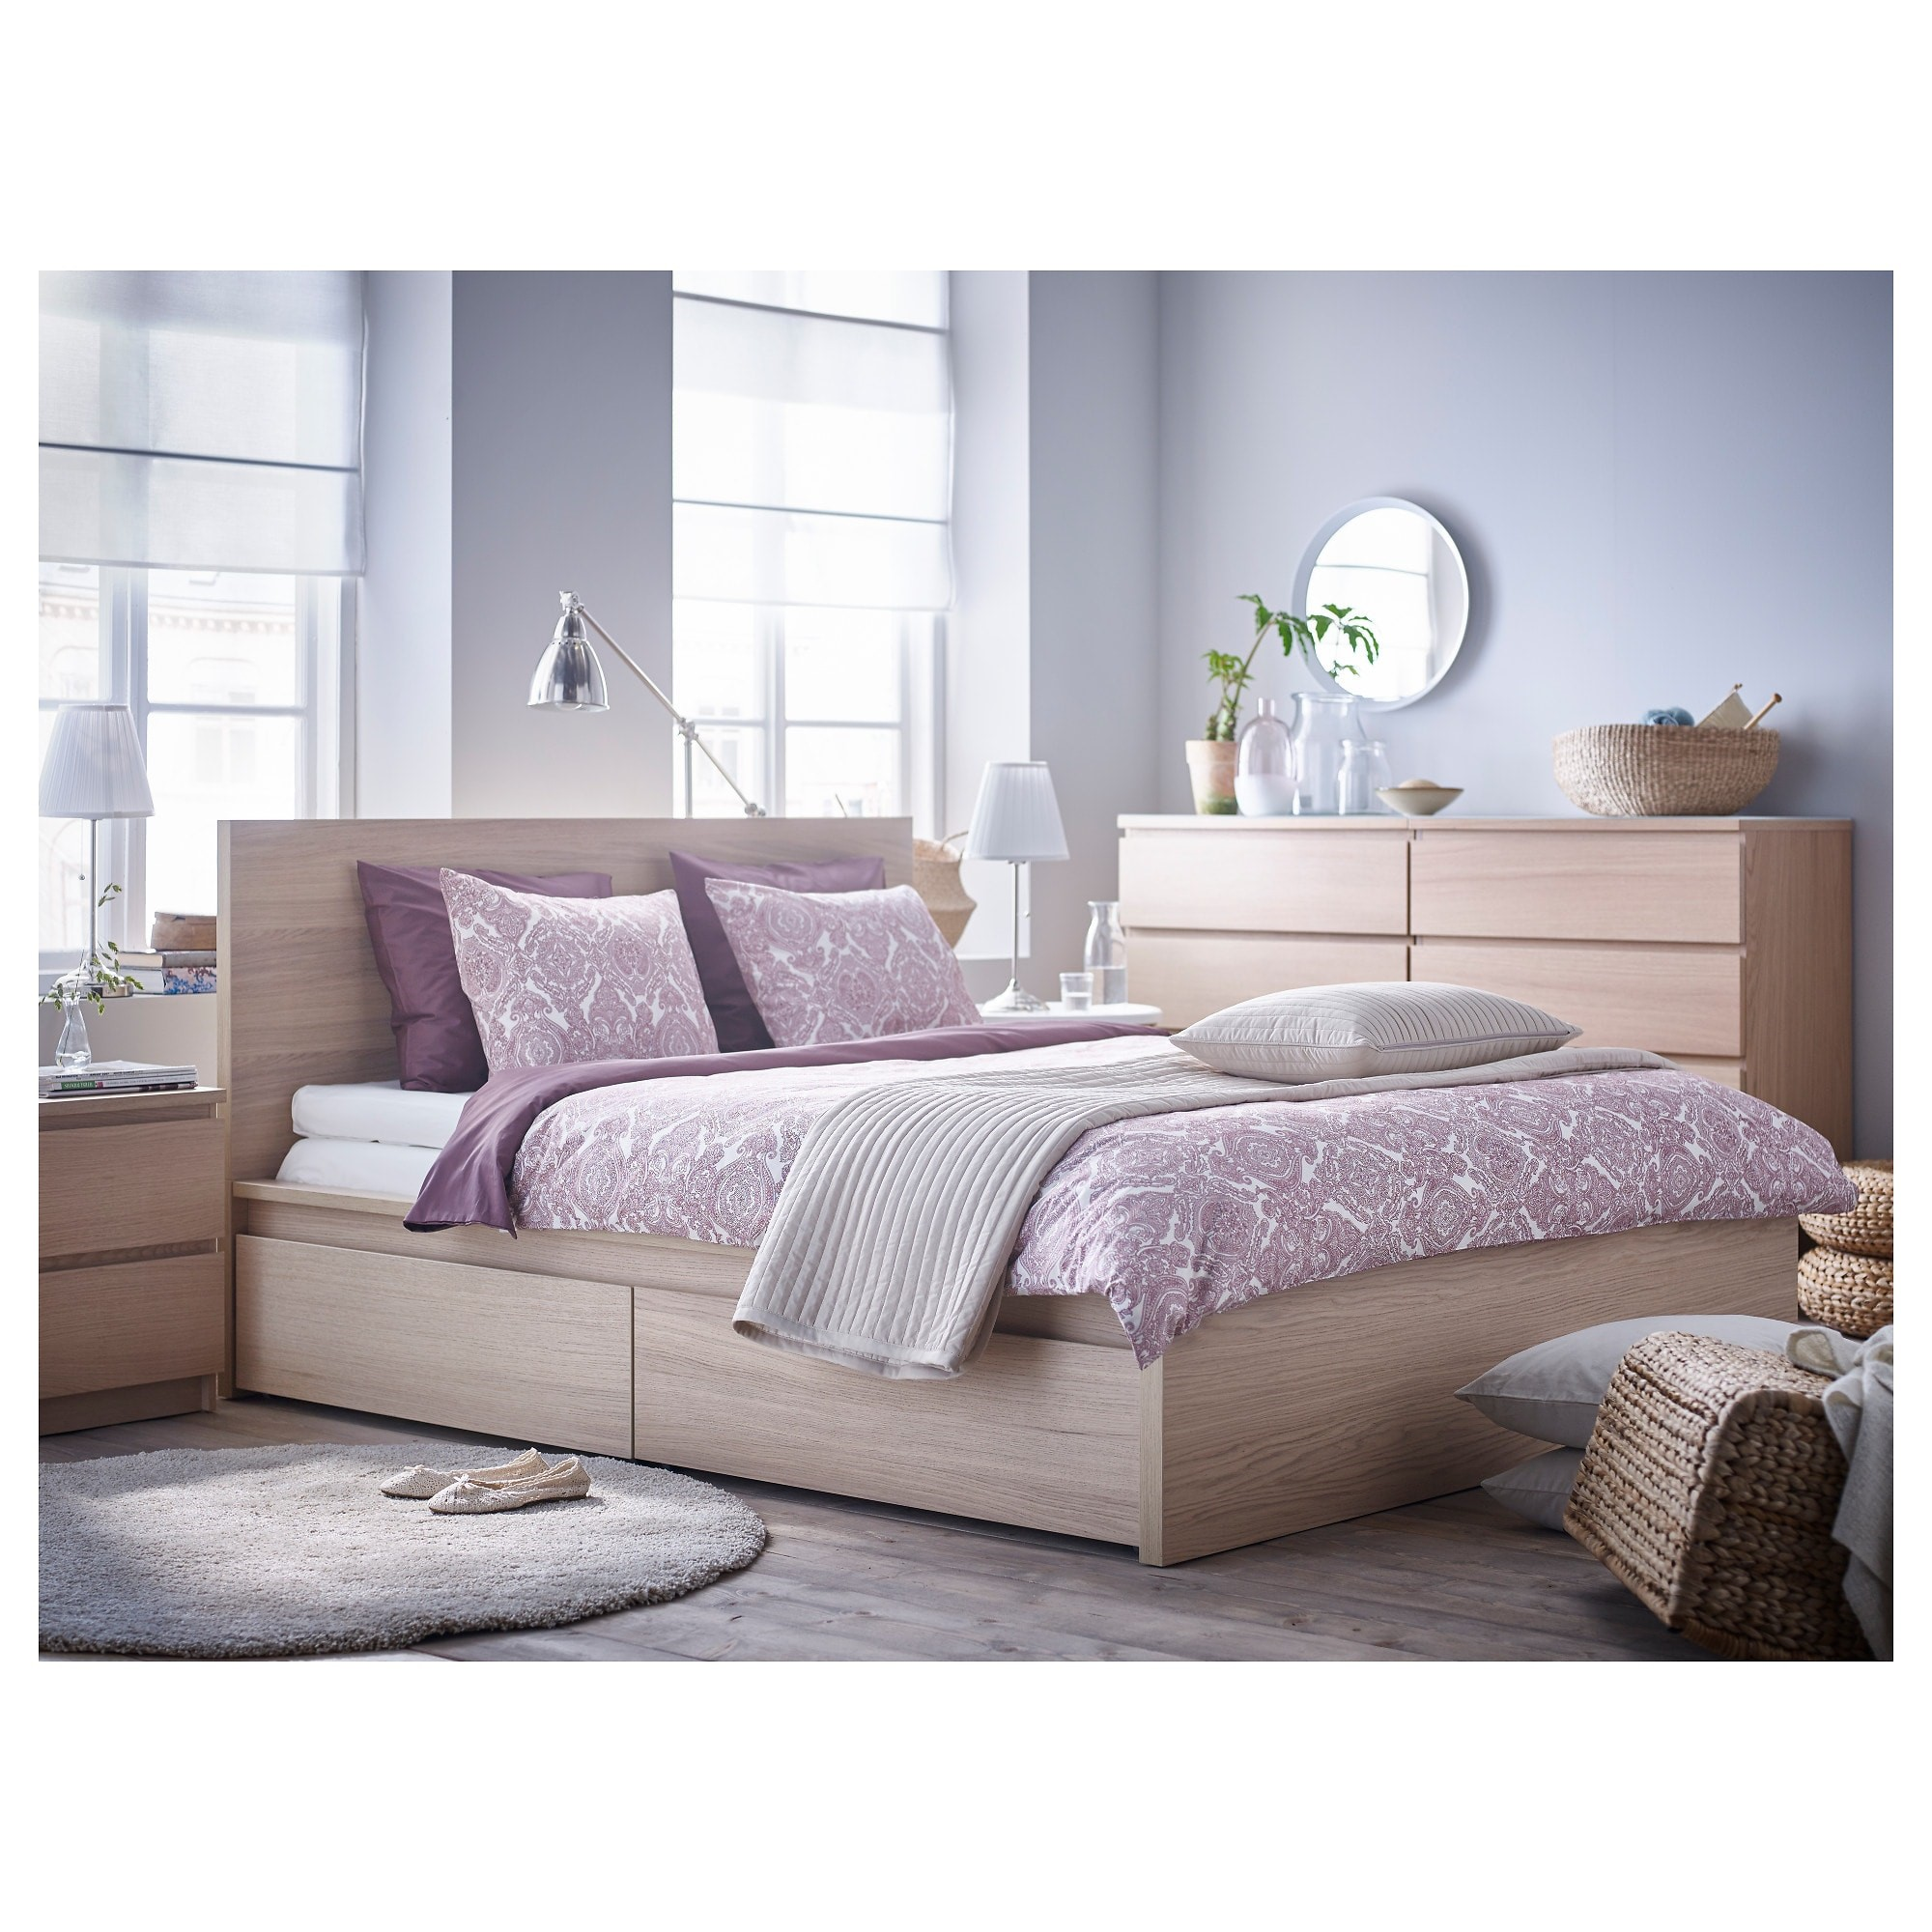 Malm Bed Frame High Luroy With 2 Storage Boxes King Size White Stained Oak Veneer Conner Furniture House